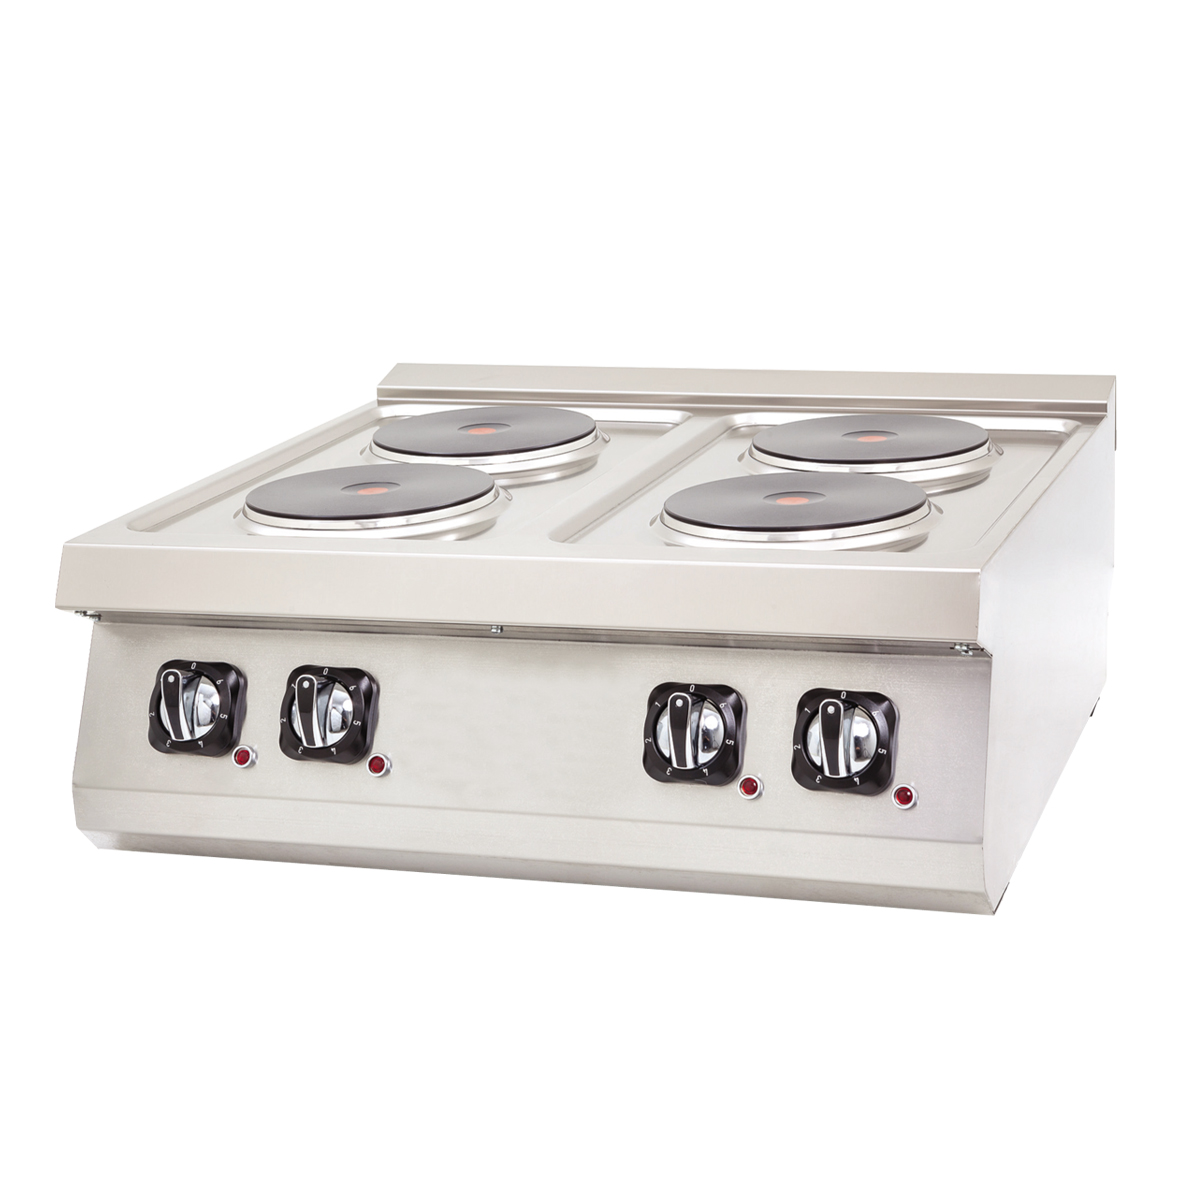 Electric Cooker - 80x70